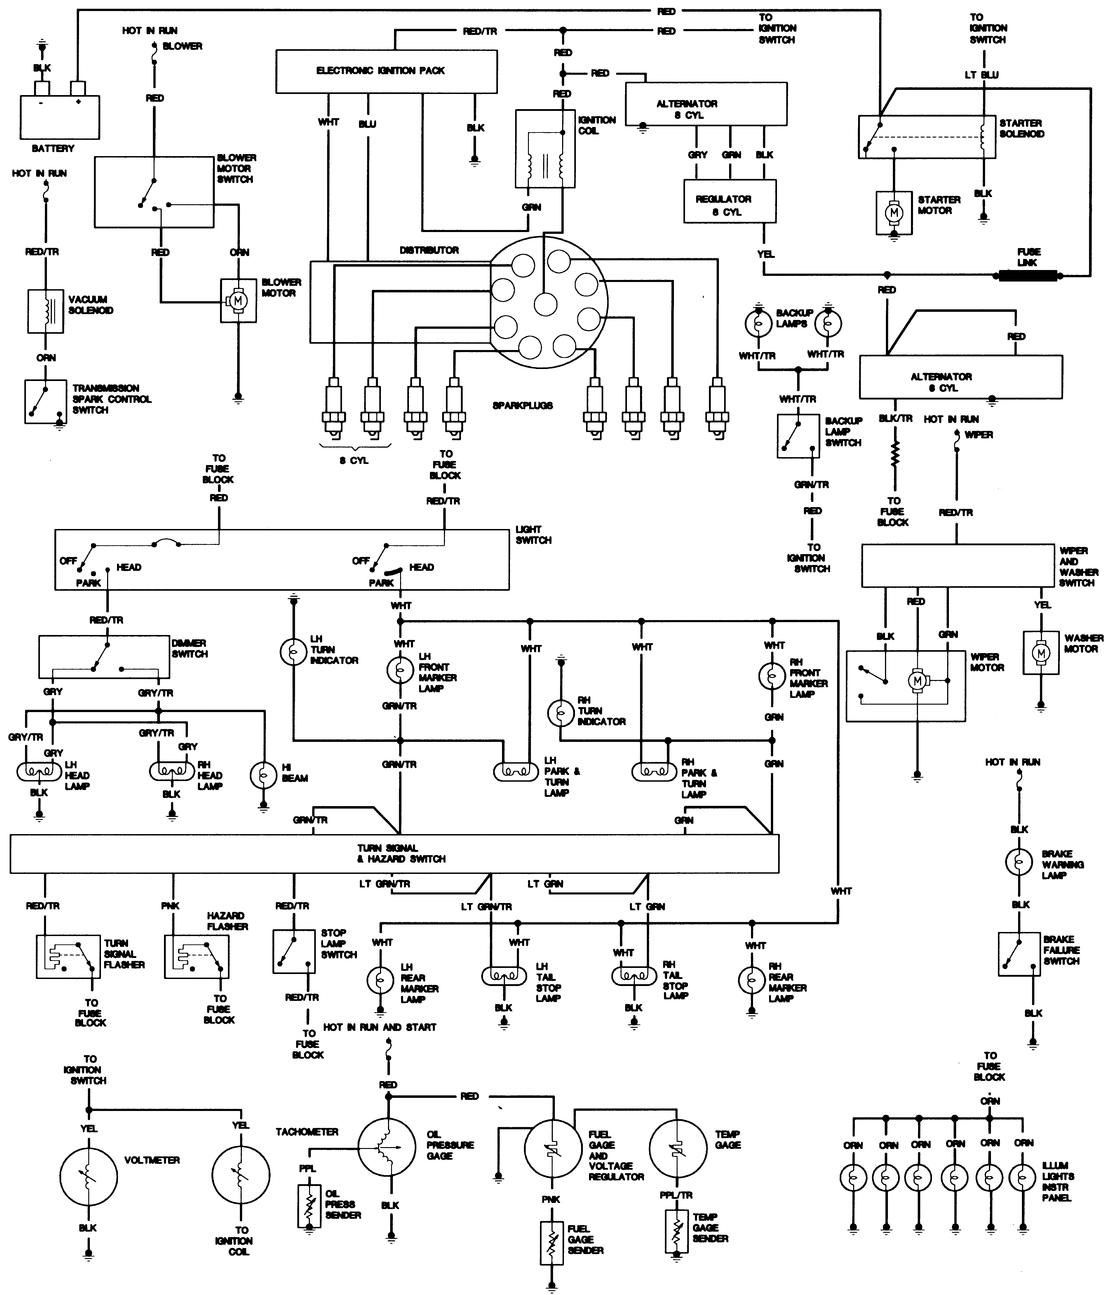 1980 Jeep J 20 Wiring Diagram Reveolution Of Marine Tachometer Diesel Alternator Instruction Cj5 Furthermore Cj7 Rh Pinterest Com Tail Light